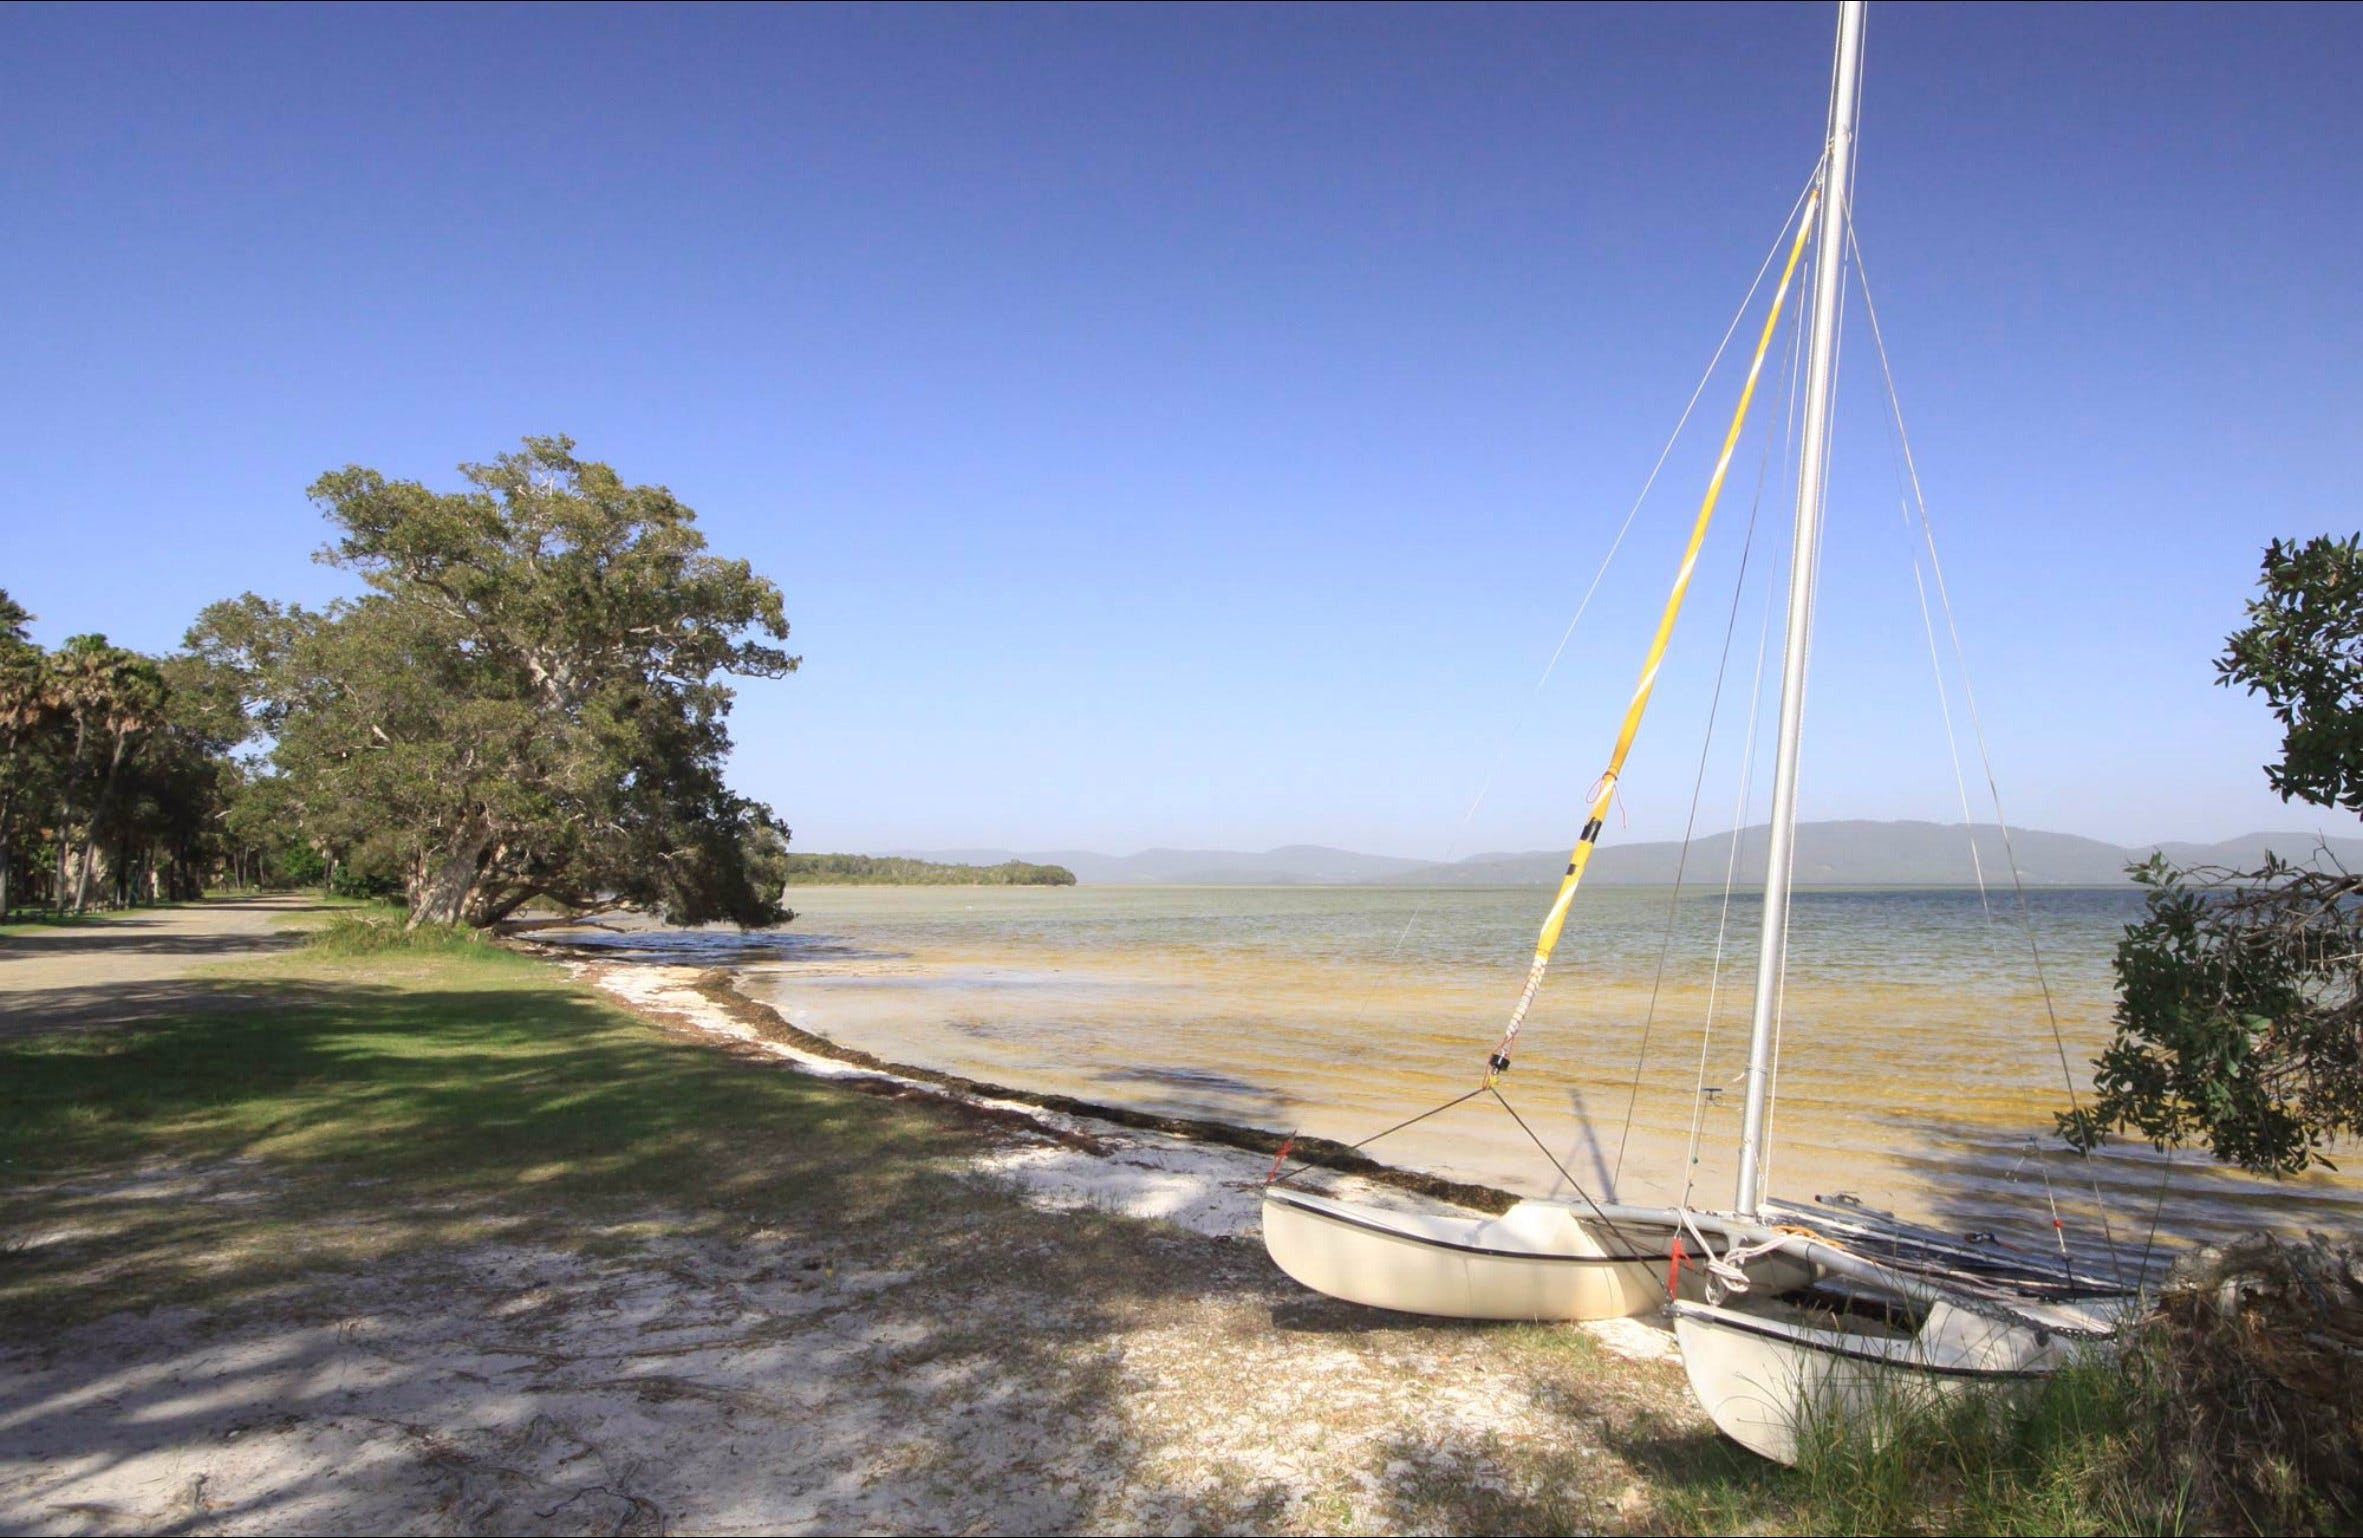 Sailing Club picnic area - Tourism Cairns